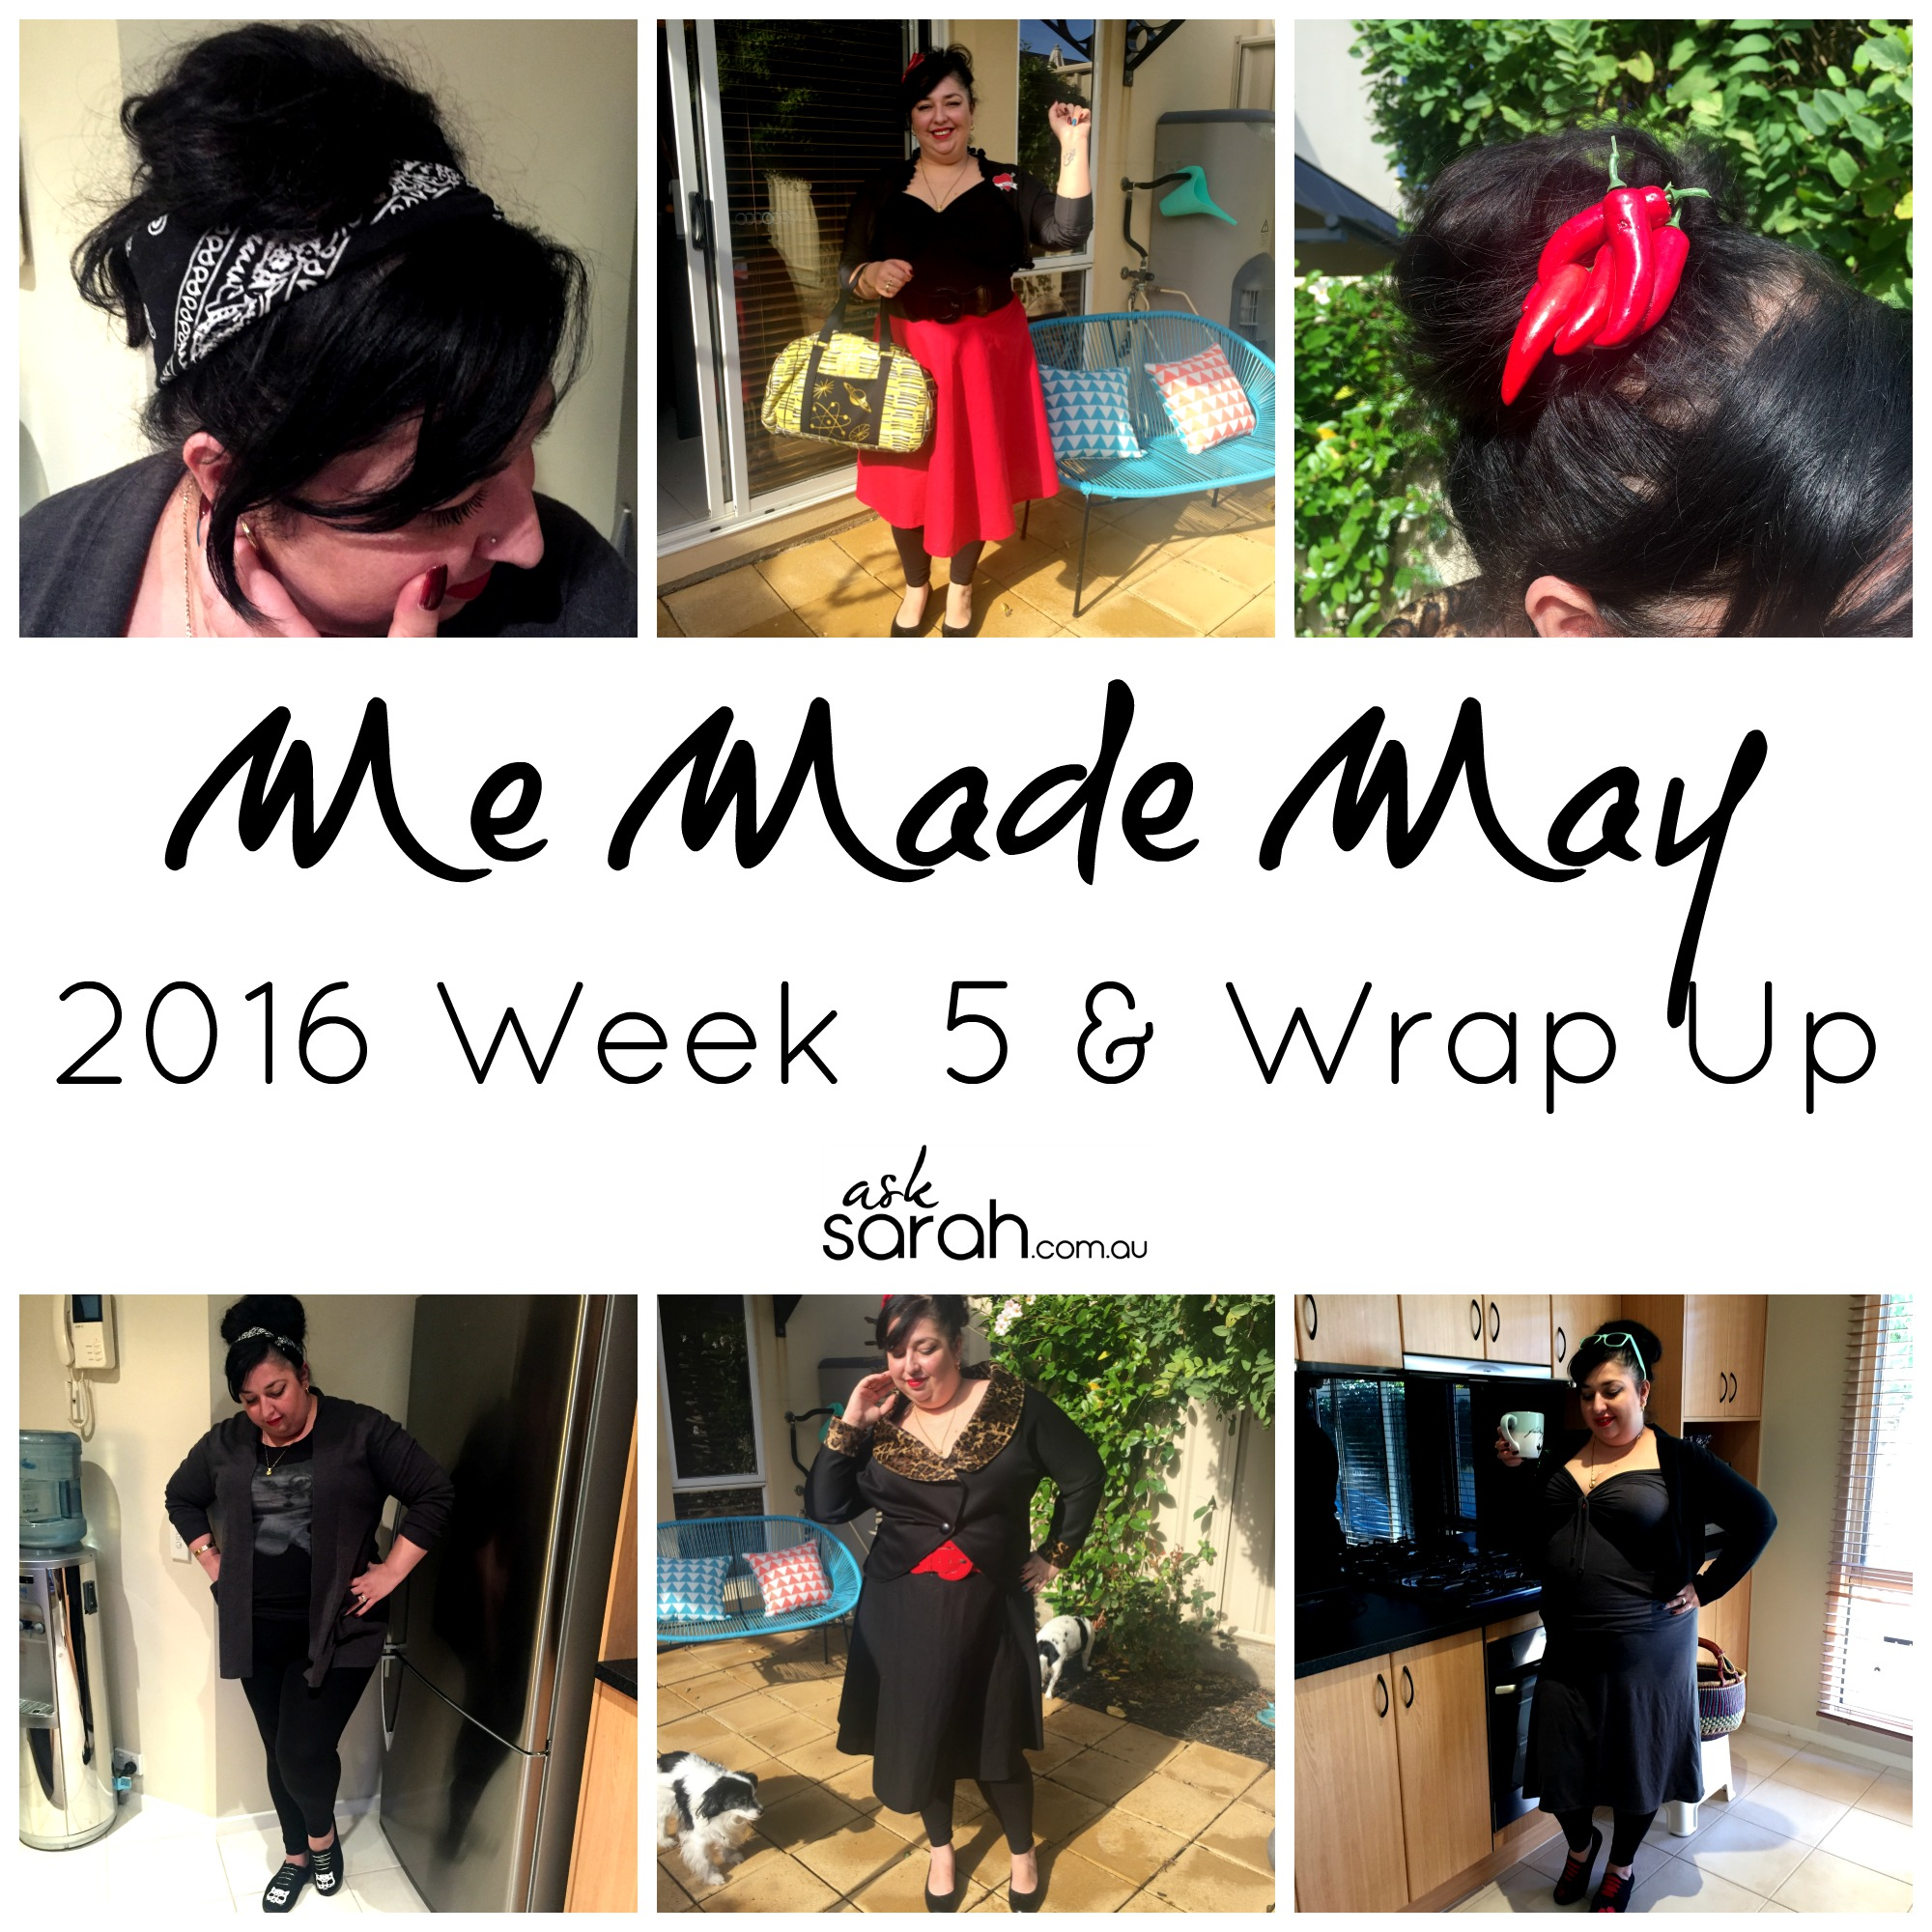 Me Made May 2016 Week 5 & Wrap Up!